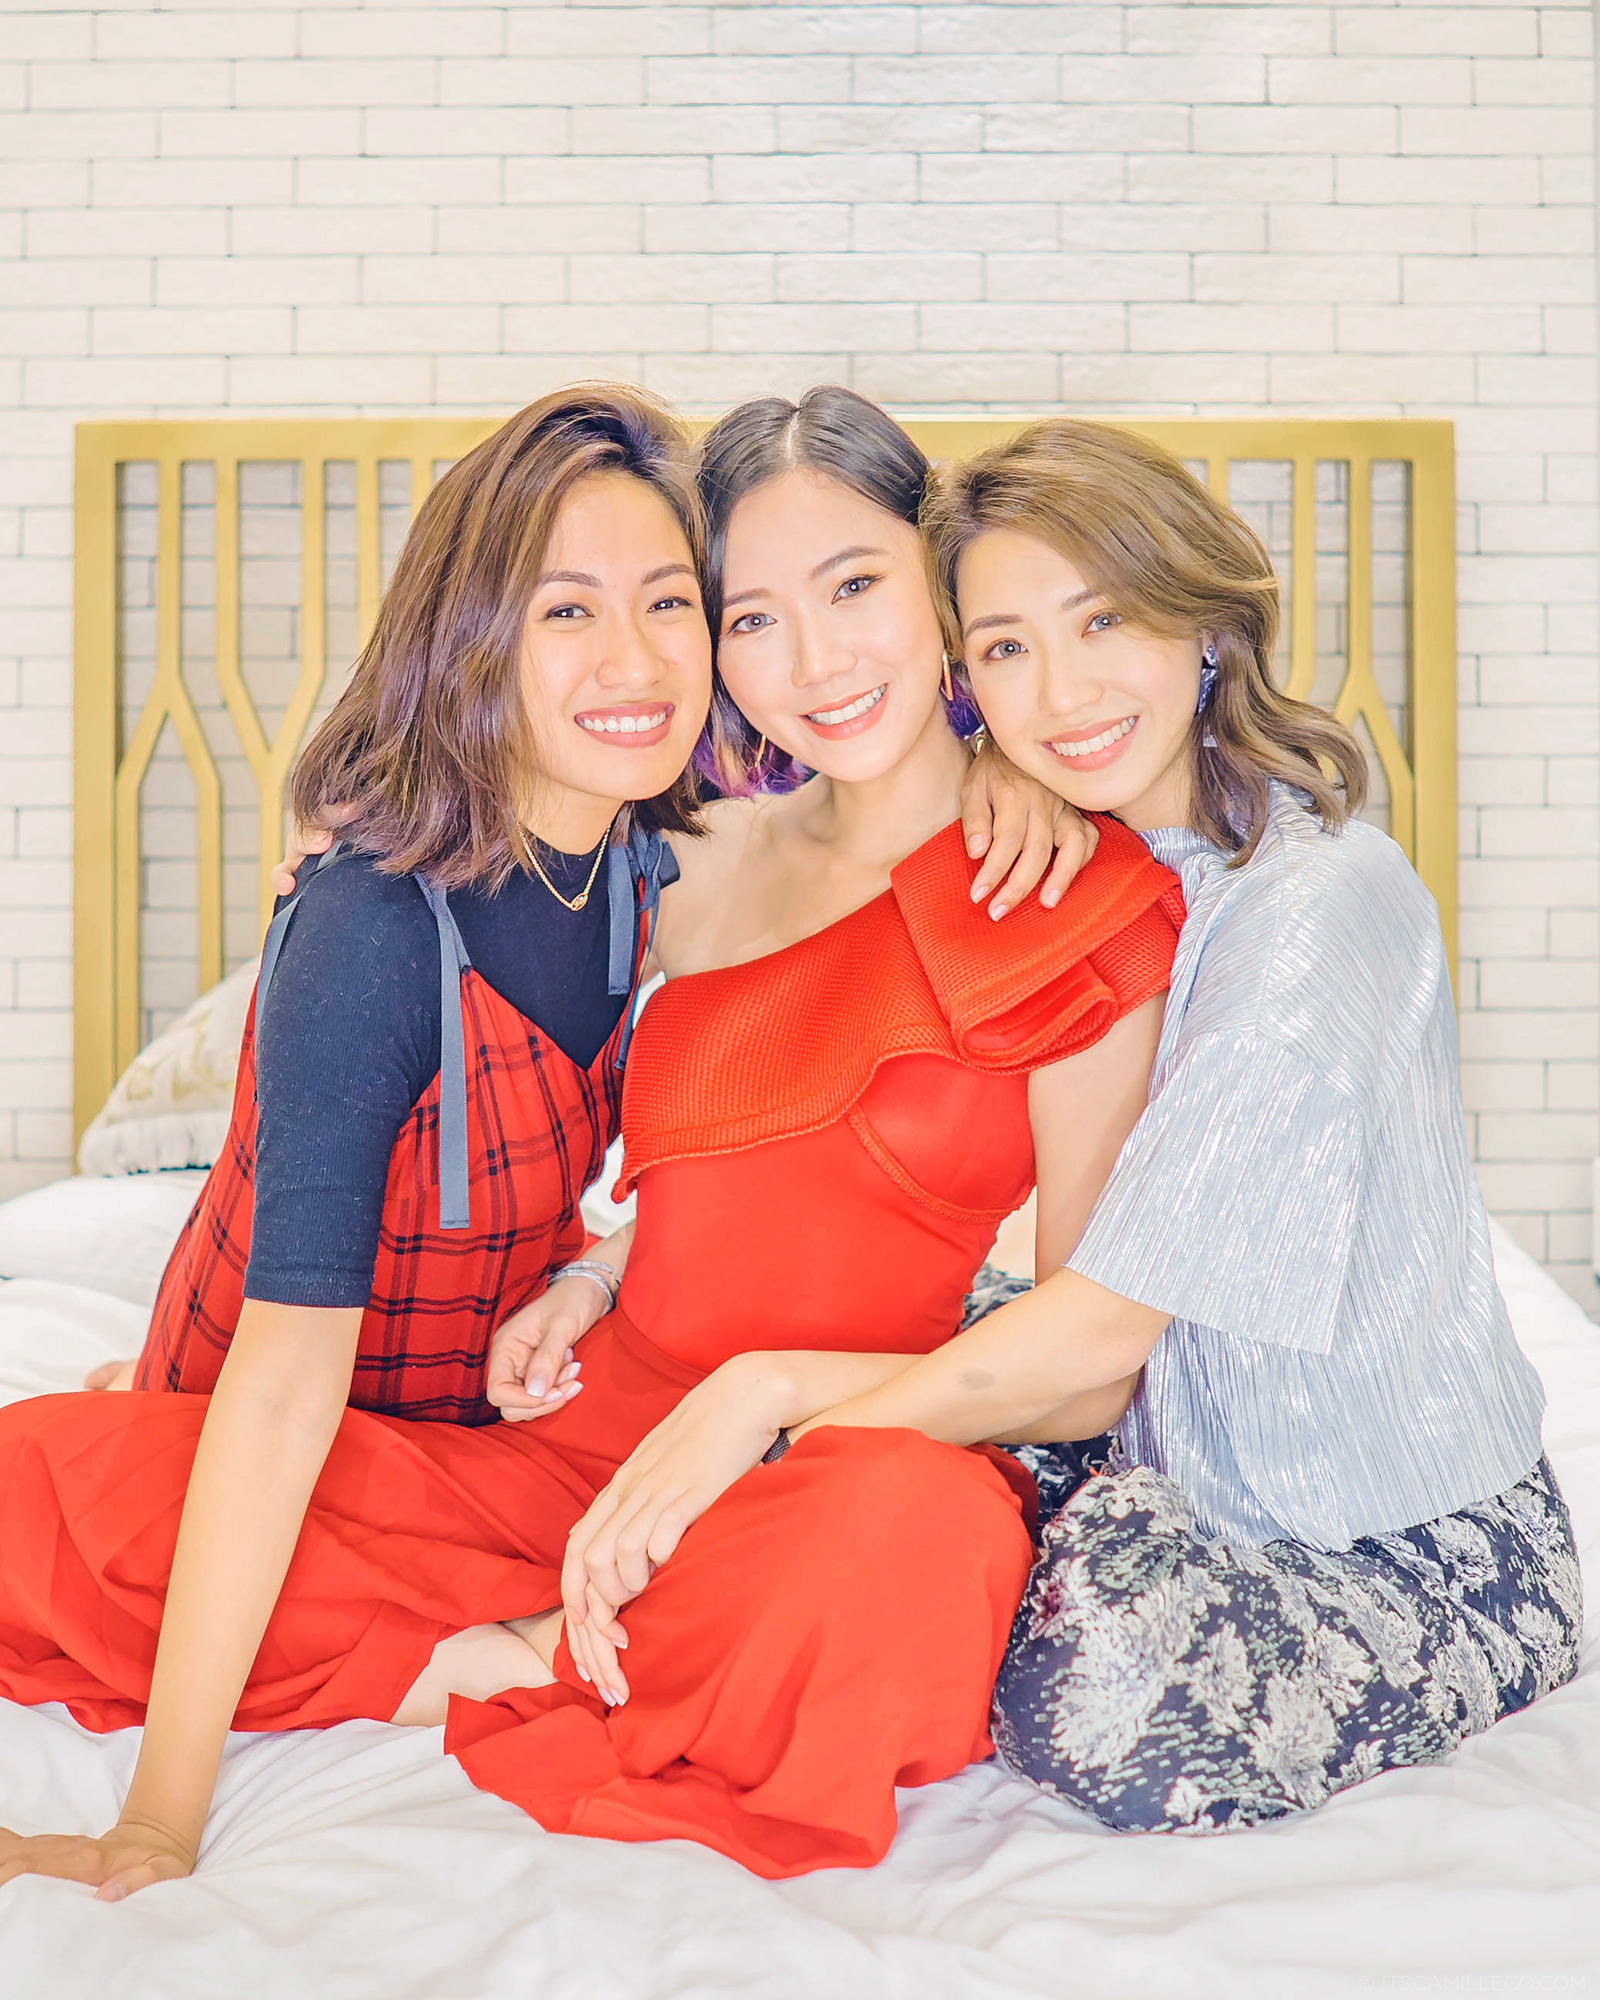 The Trio Laureen Uy, Camille Co, Kryz Uy